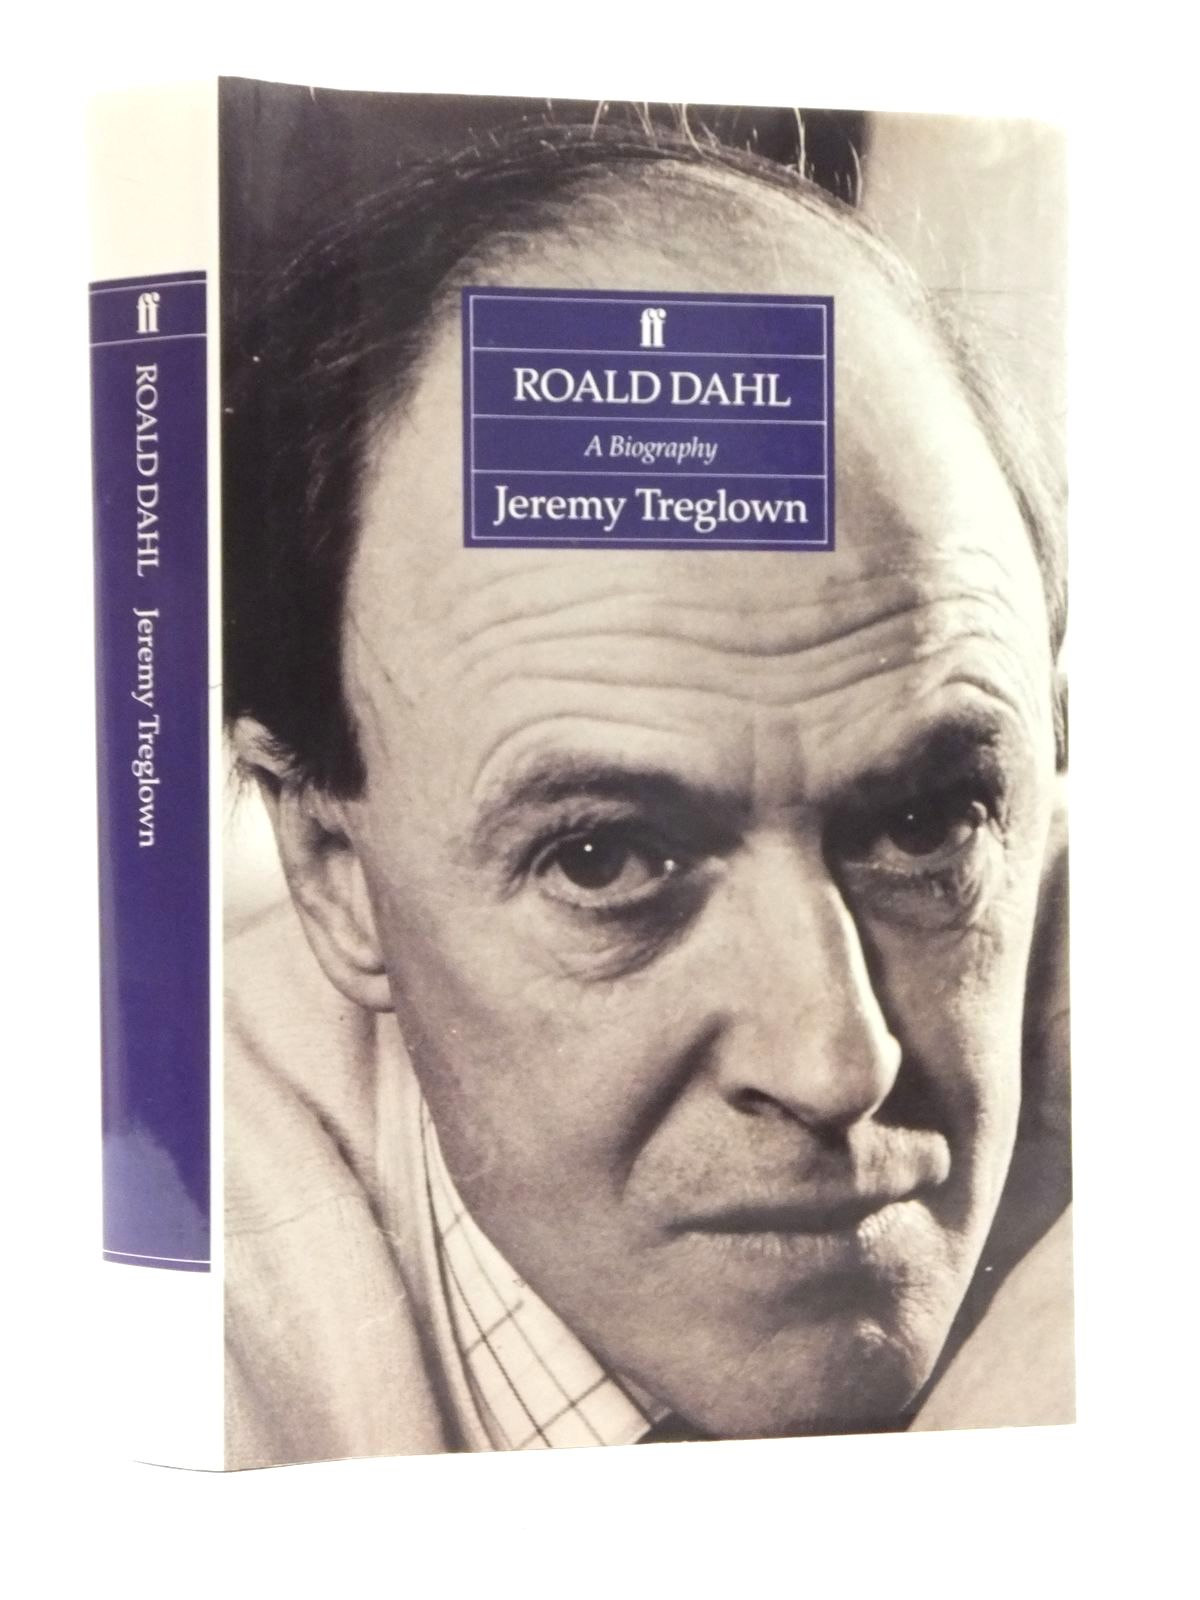 Photo of ROALD DAHL written by Treglown, Jeremy published by Faber & Faber (STOCK CODE: 2123721)  for sale by Stella & Rose's Books